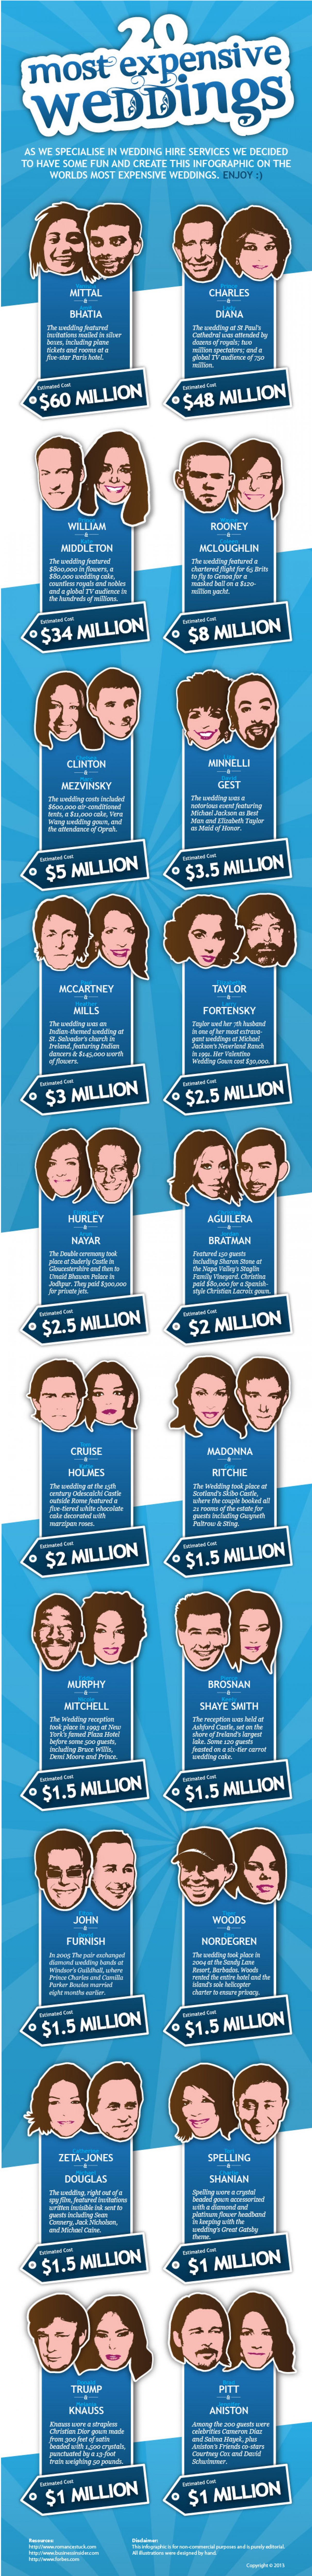 "An Infographic on ""20 Most Expensive Weddings"" Infographic"